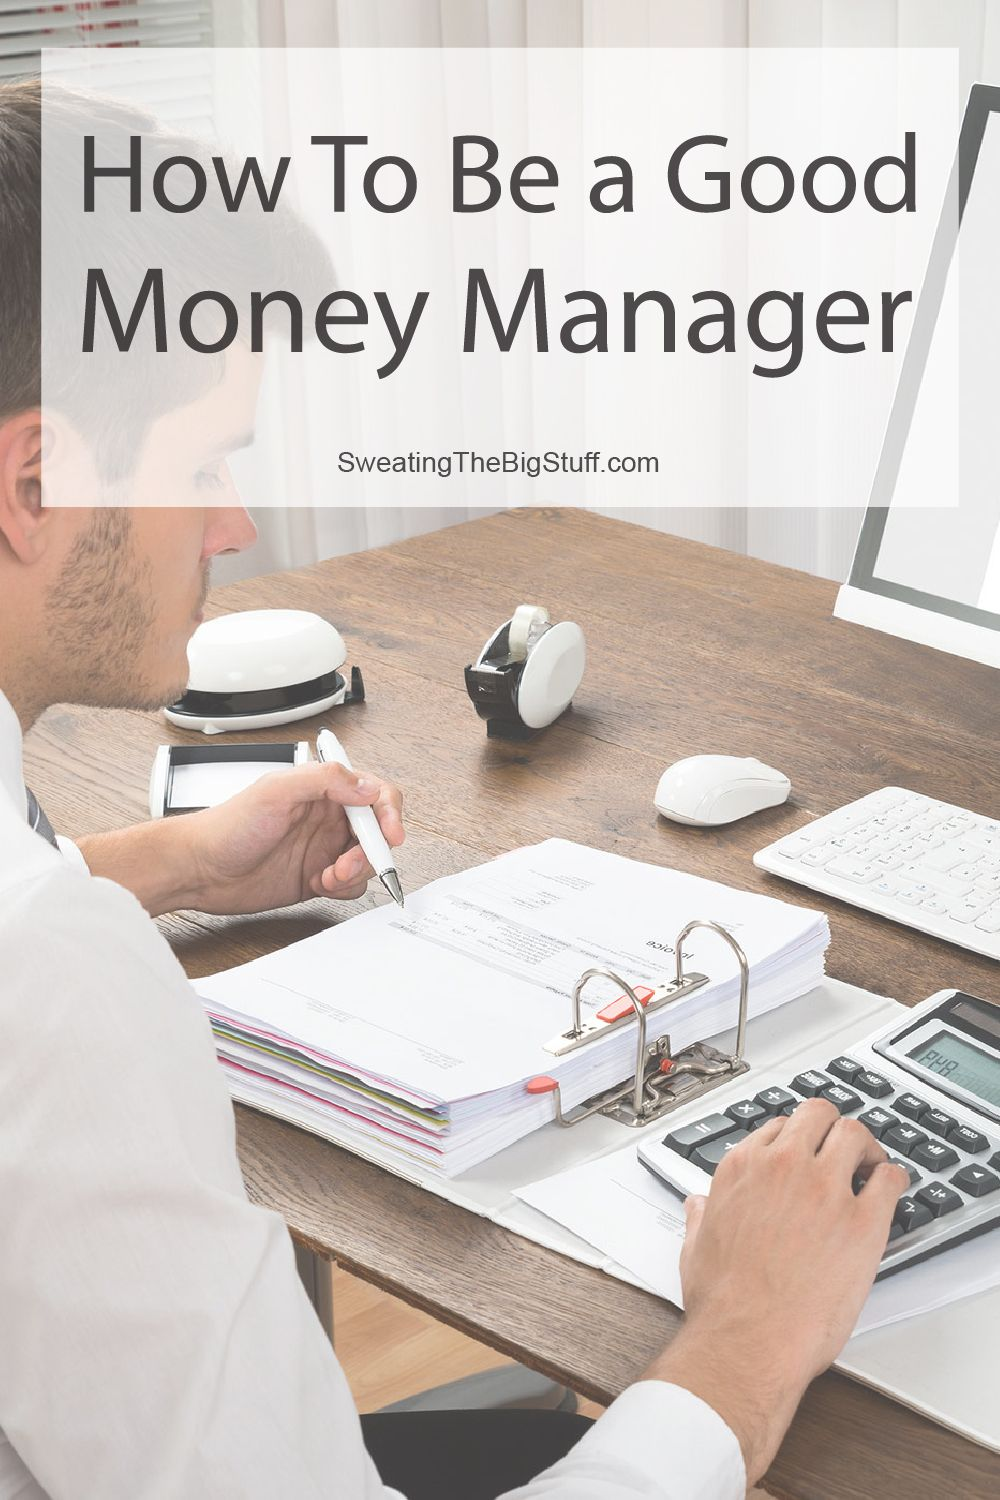 How To Be A Good Money Manager